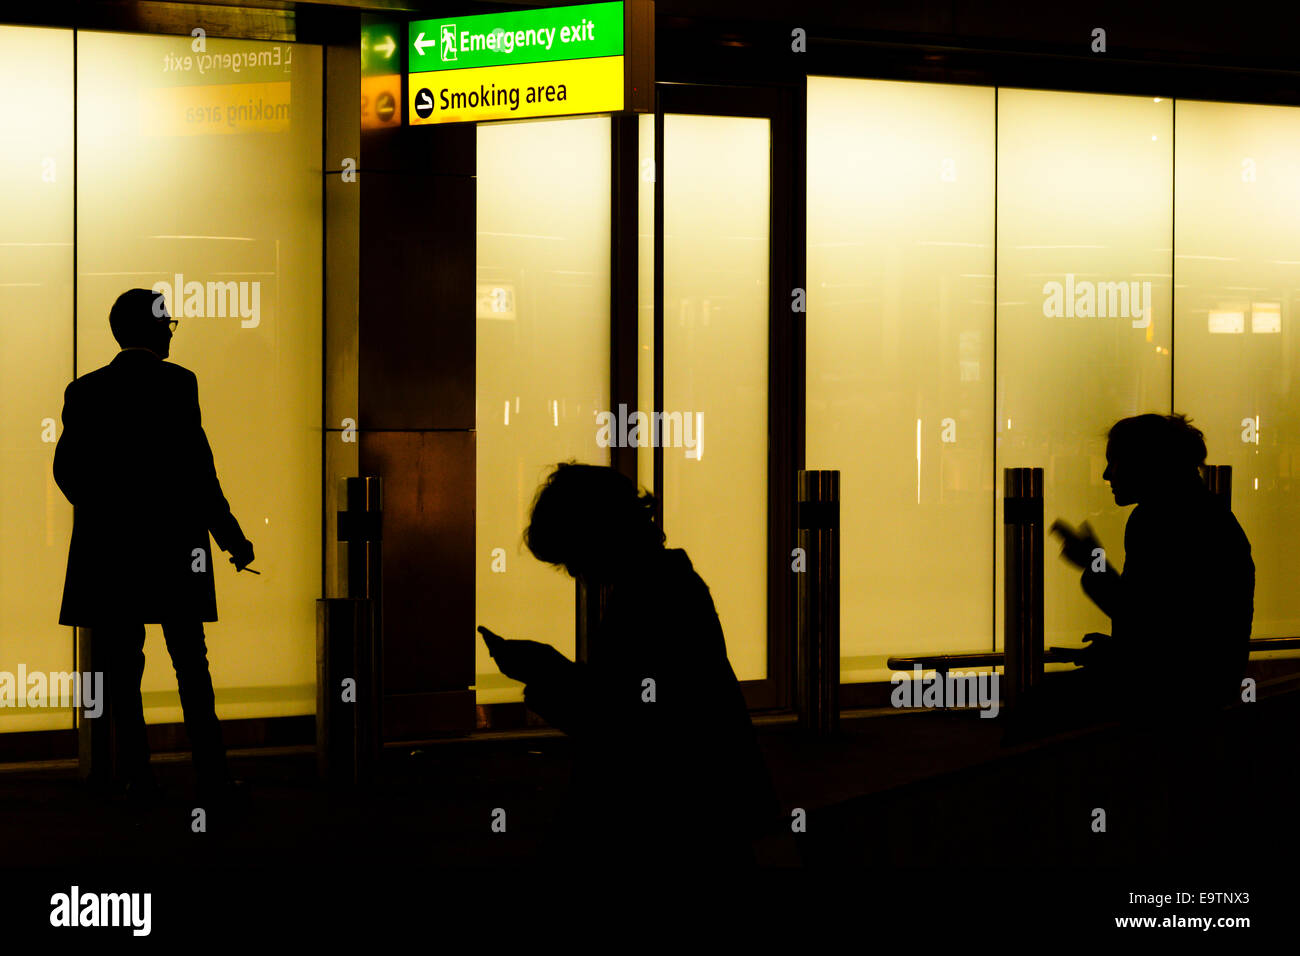 Three smokers in smoking area outside building at night. - Stock Image